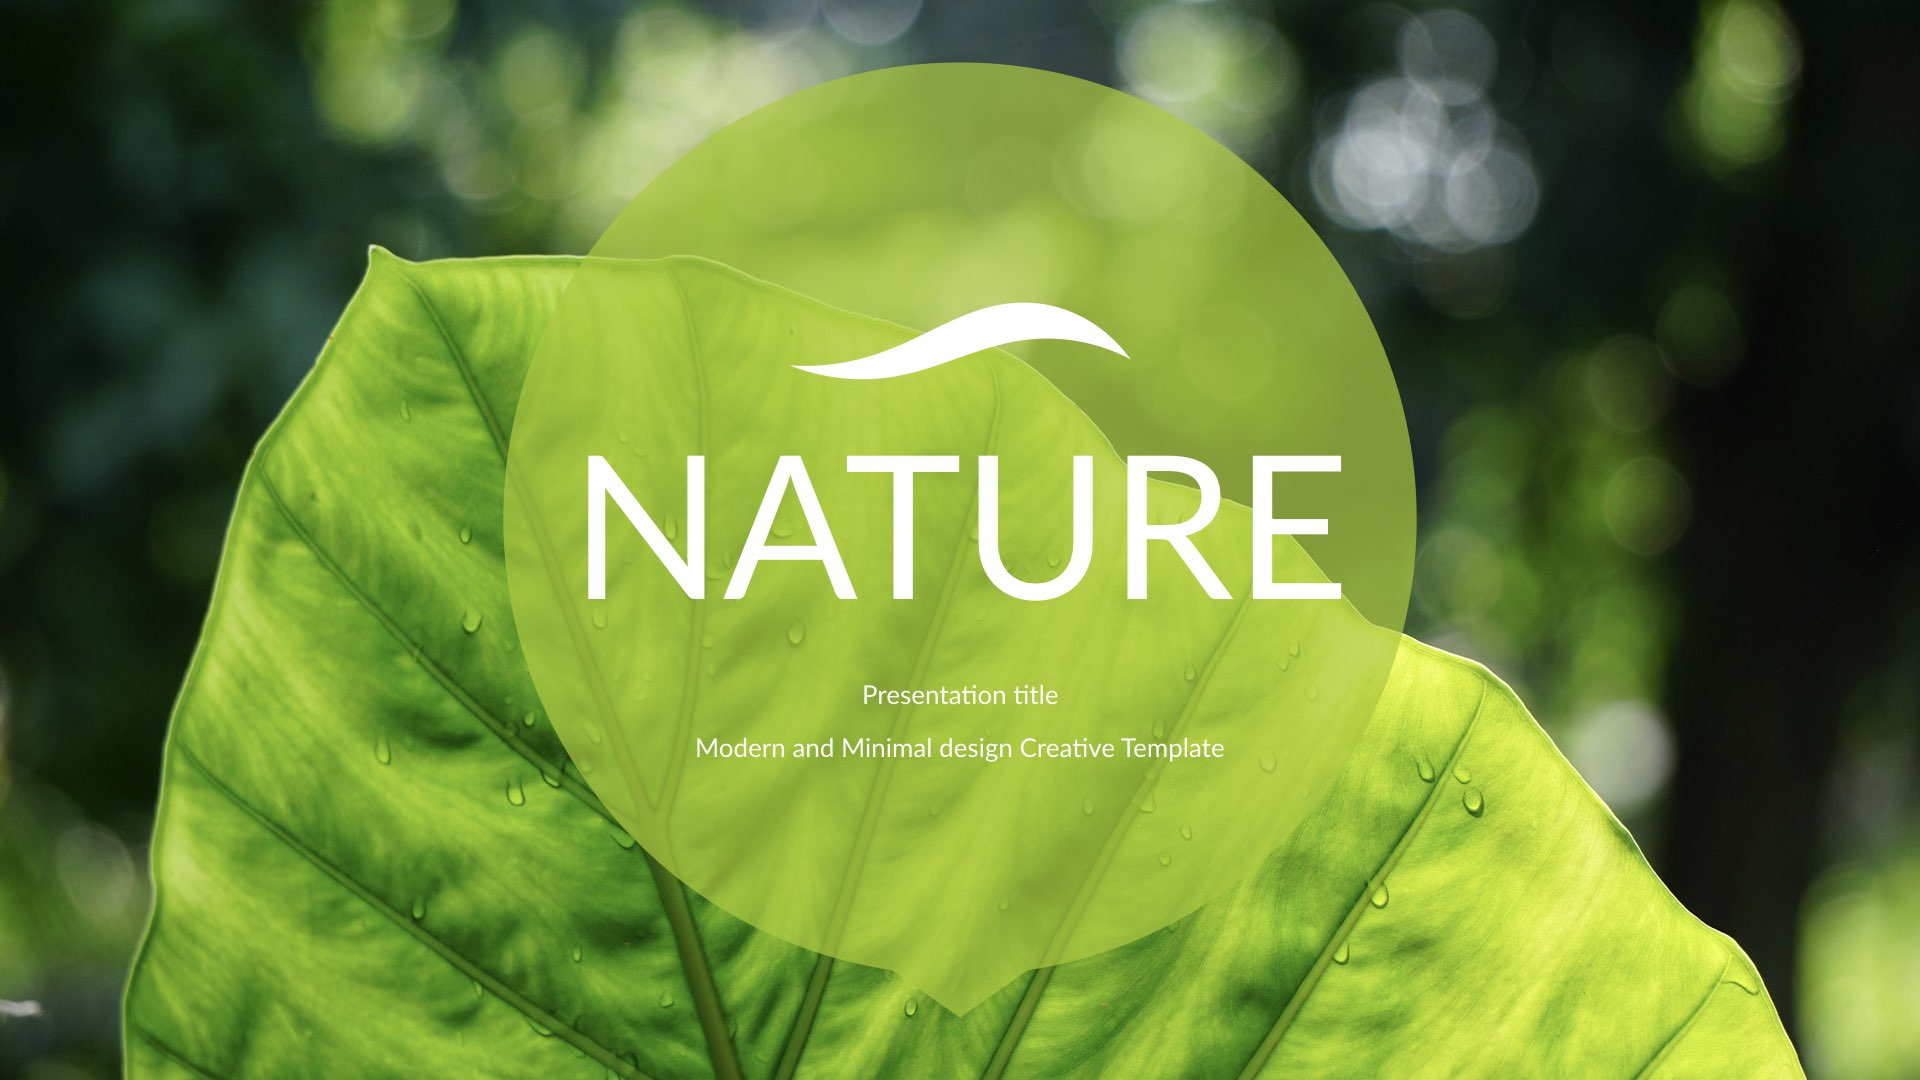 Nature simple creative powerpoint template by 5yue graphicriver nature004 nature007eg toneelgroepblik Image collections